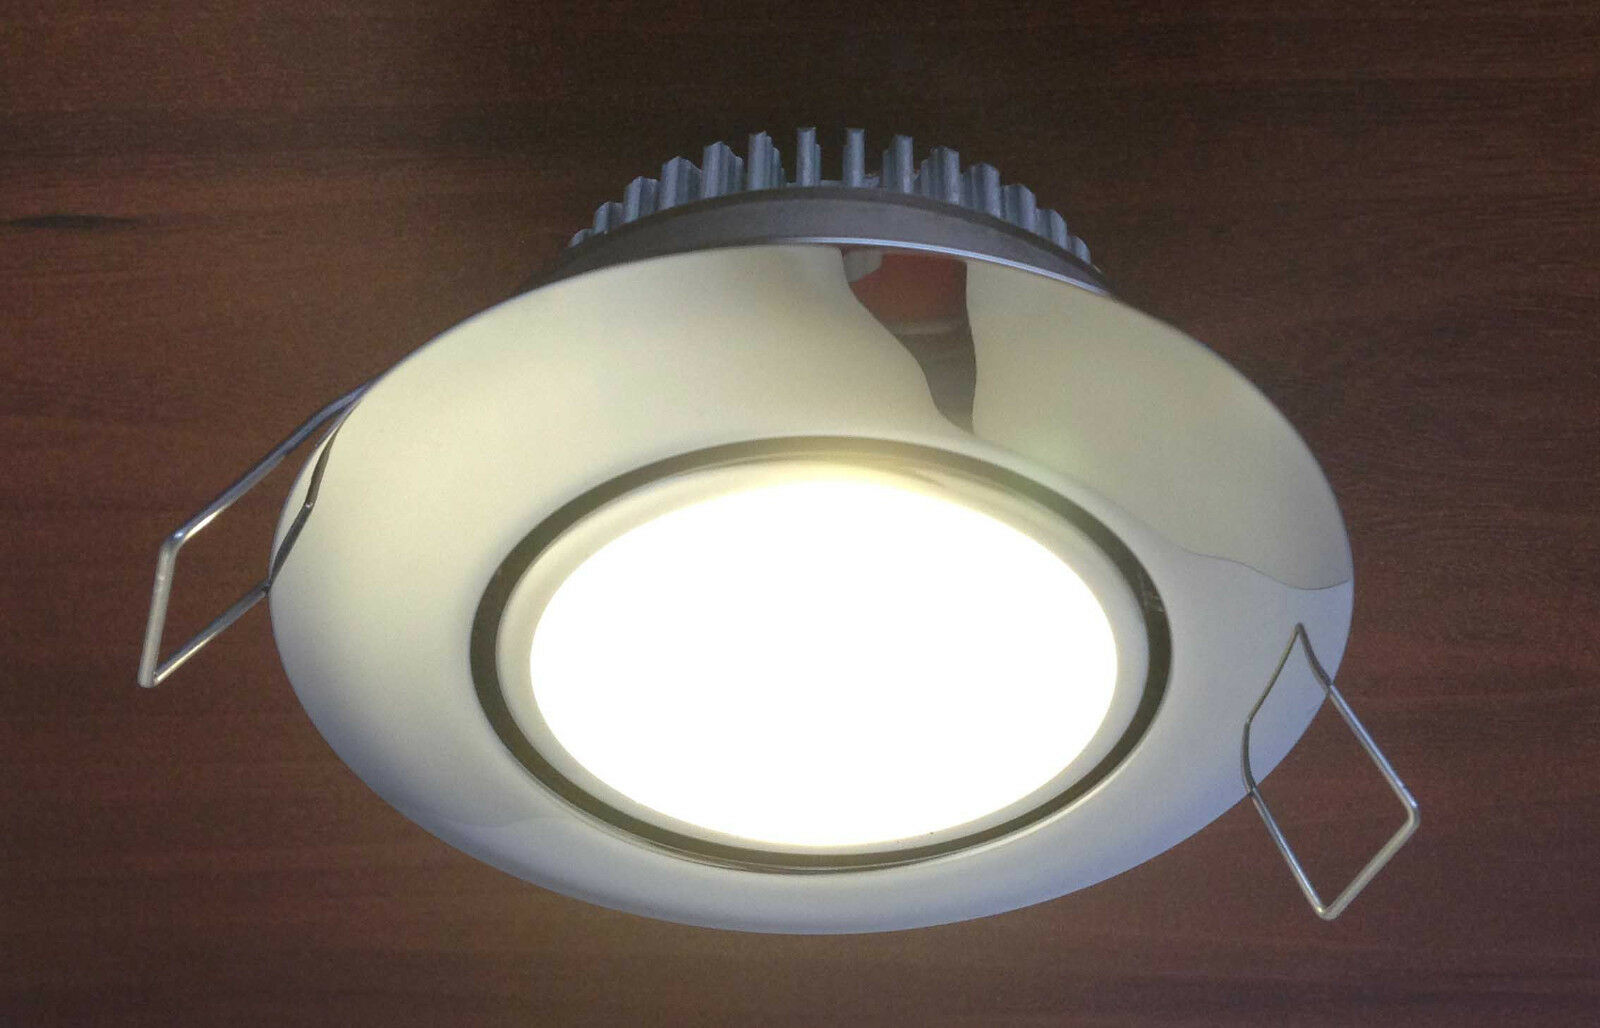 MARINE BOAT LED STAINLESS STEEL CEILING LIGHT ODM CLIP ON INSsizeTION